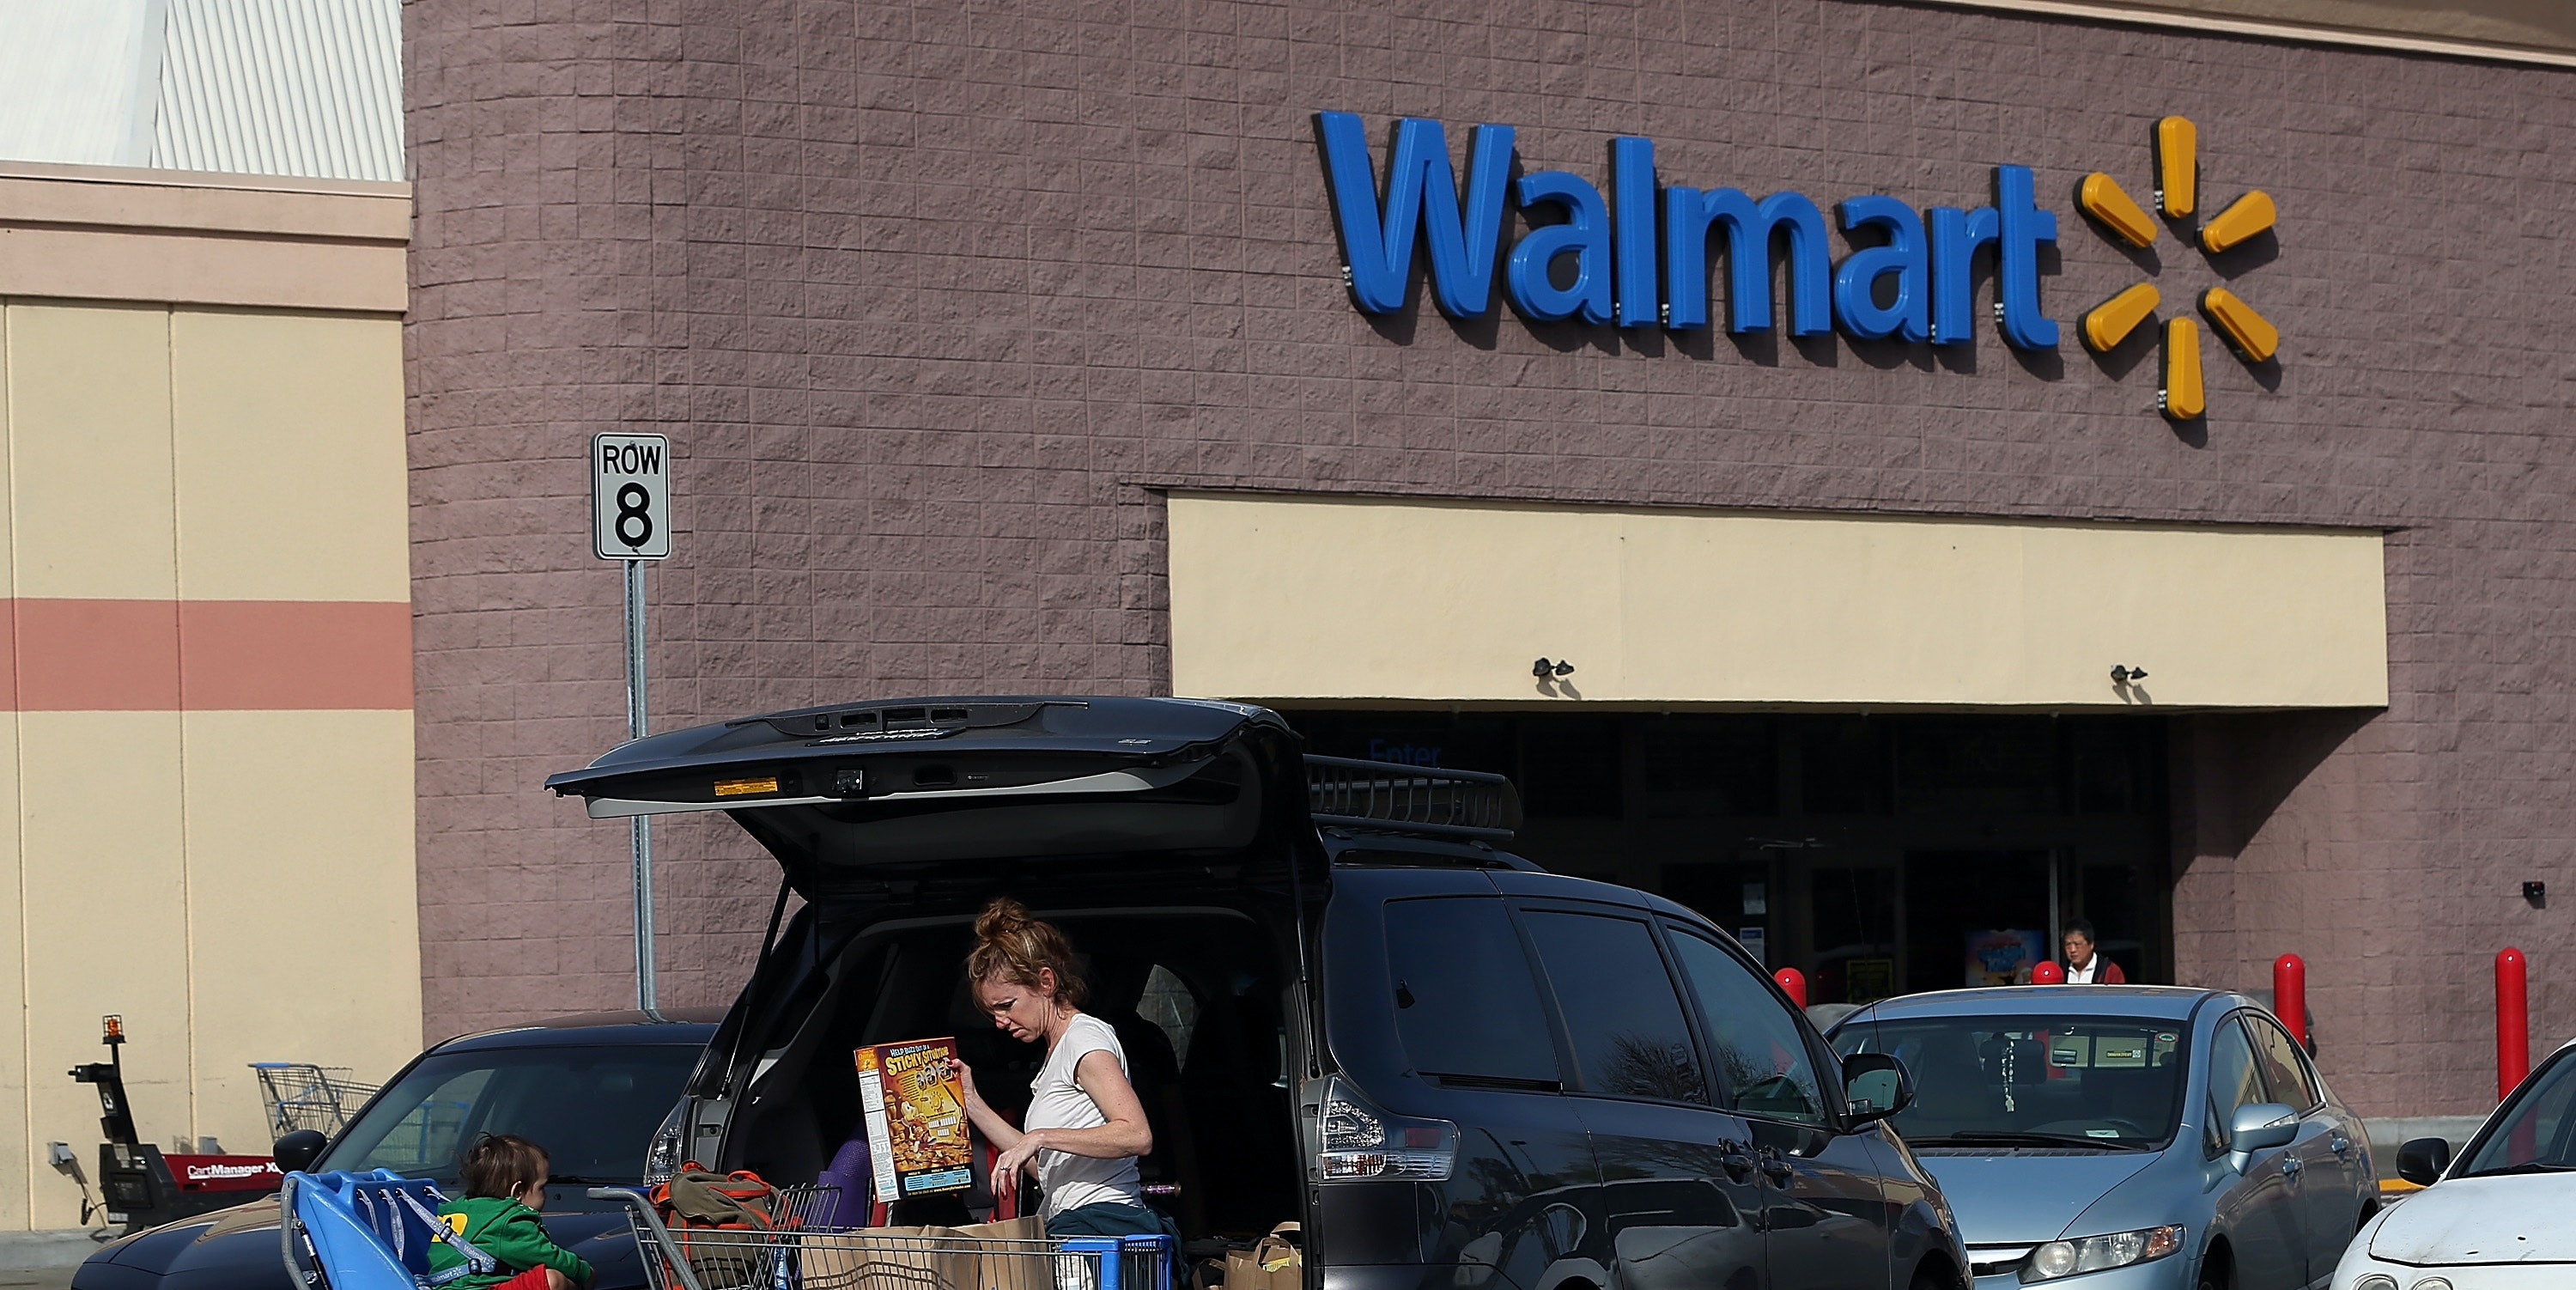 wal mart a template for 21st century The retailer has become what labor historian nelson lichtenstein has dubbed a template for 21st-century capitalism: hailed by economists for increasing economic productivity, blamed by critics for low wages, poor healthcare, urban sprawl and the trade deficit with china.